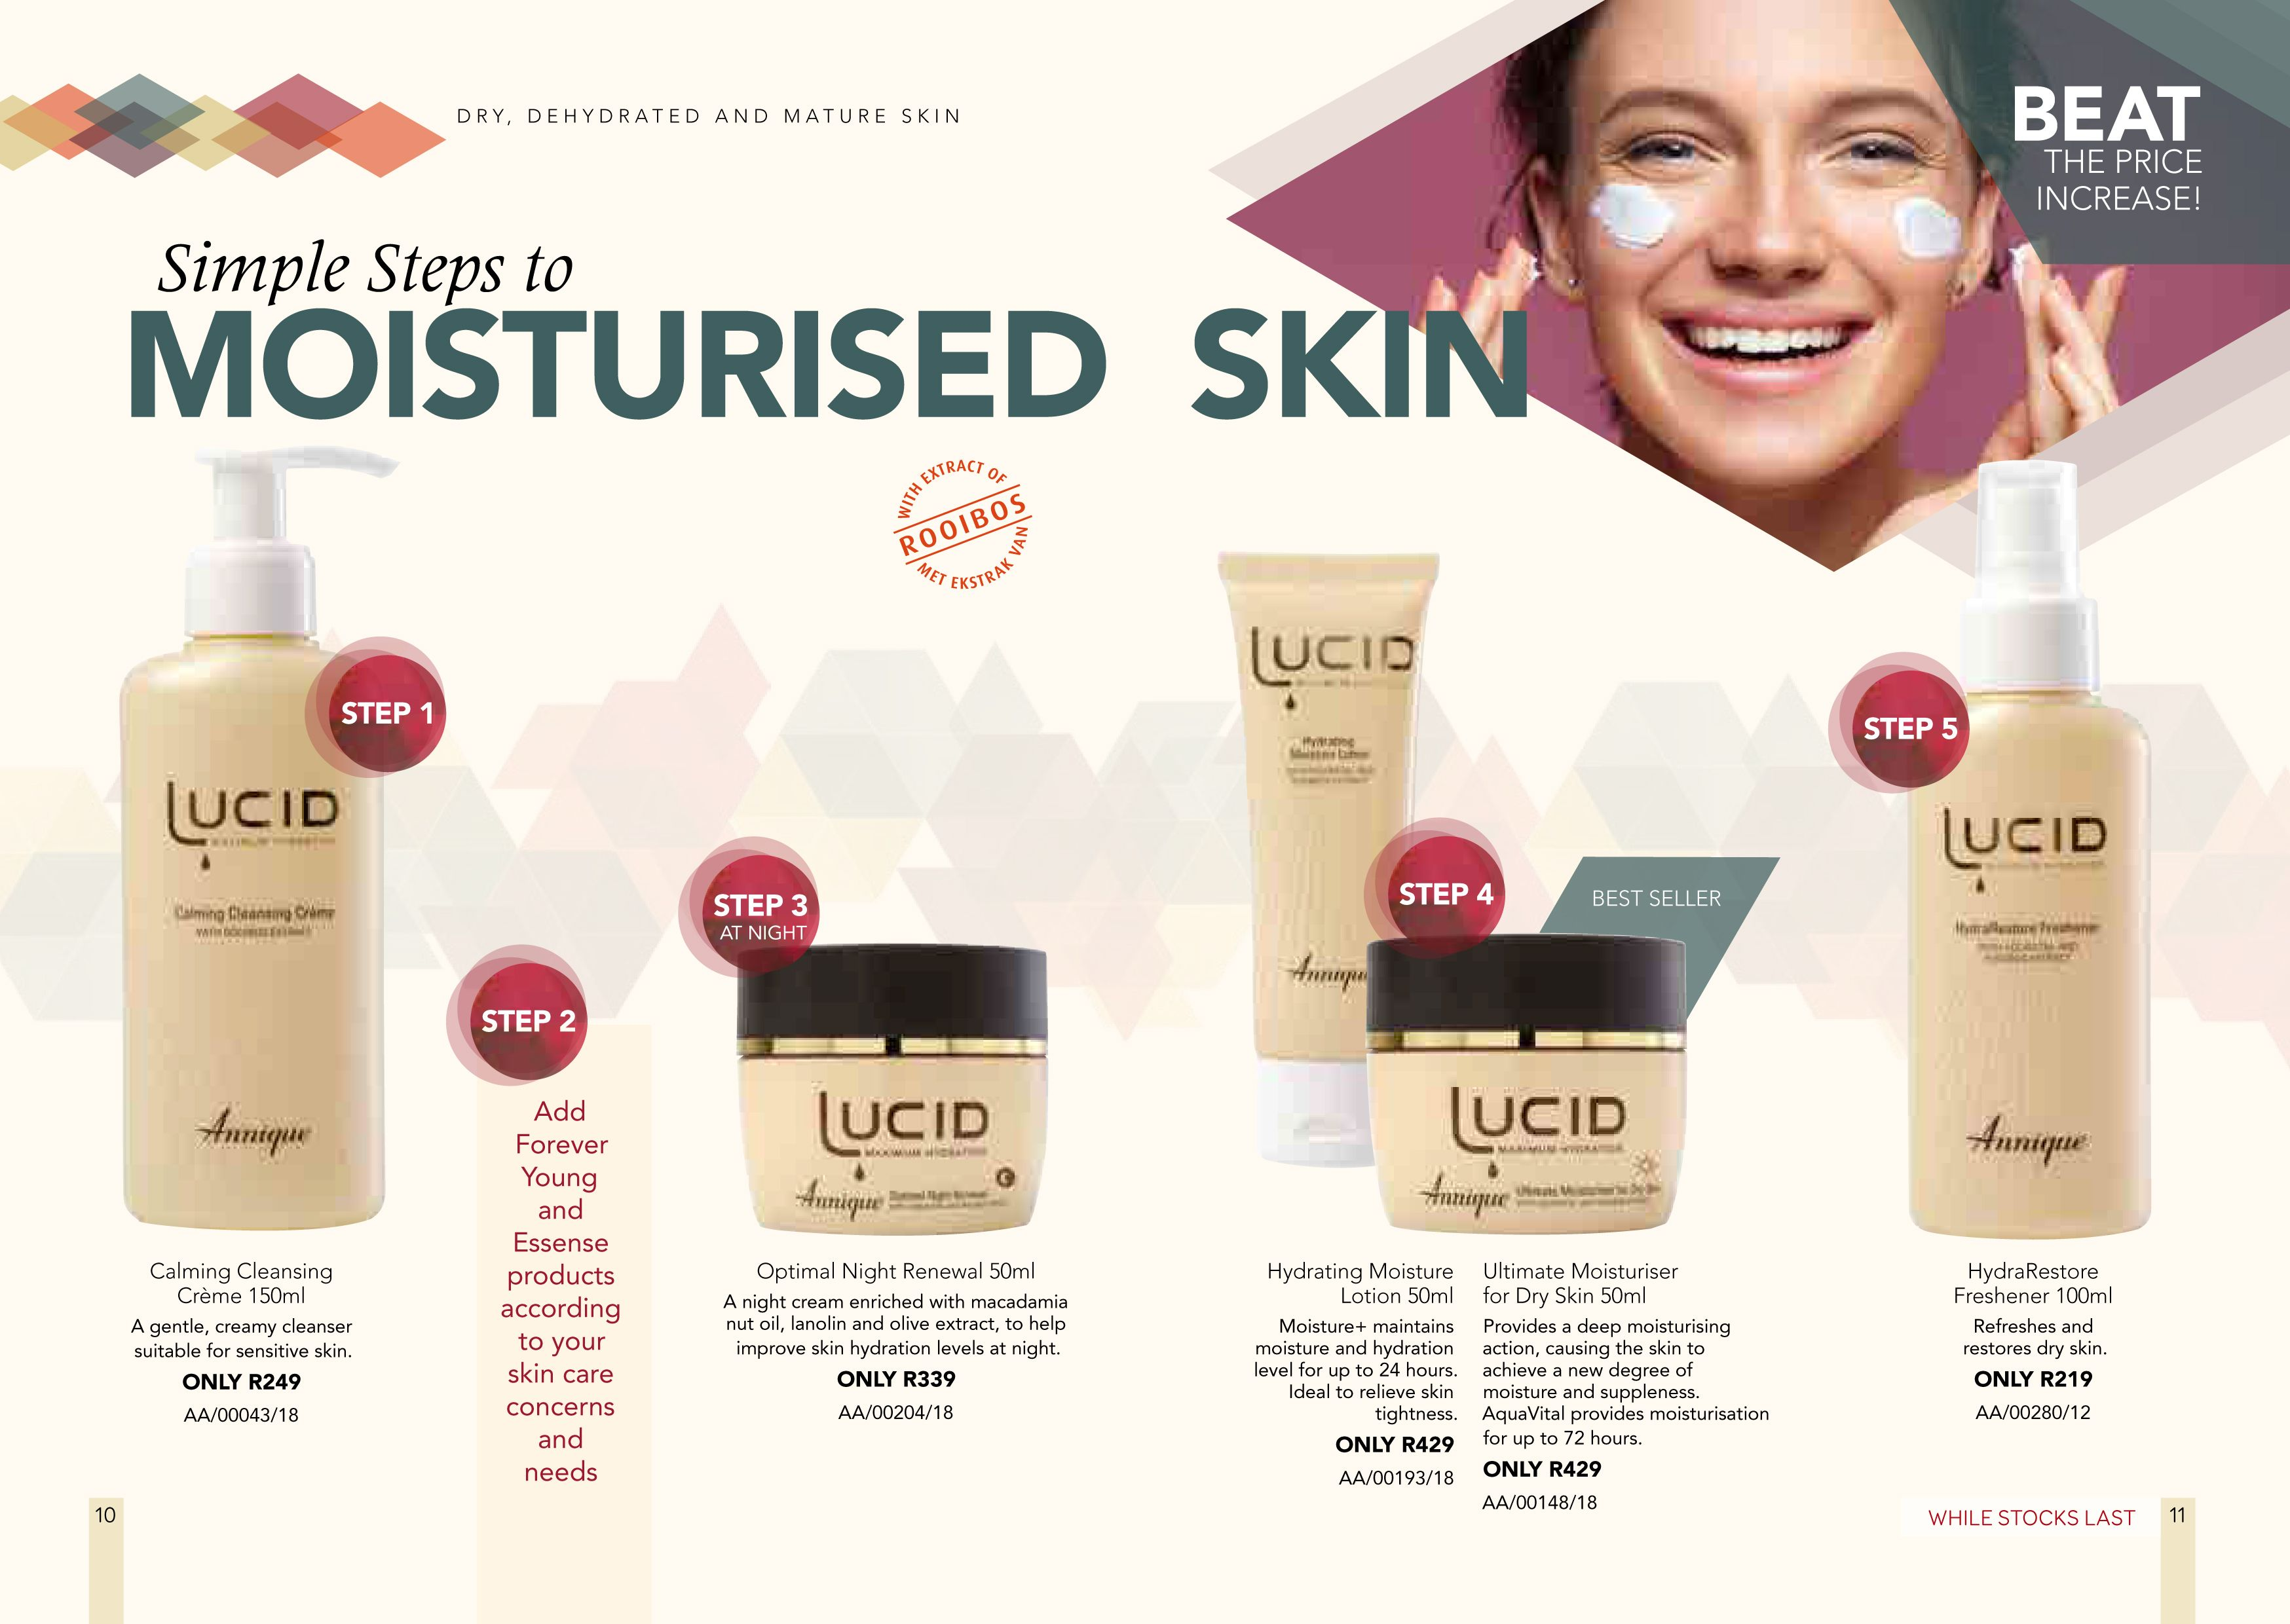 Purchase your favourite Annique Skin, Body and Health